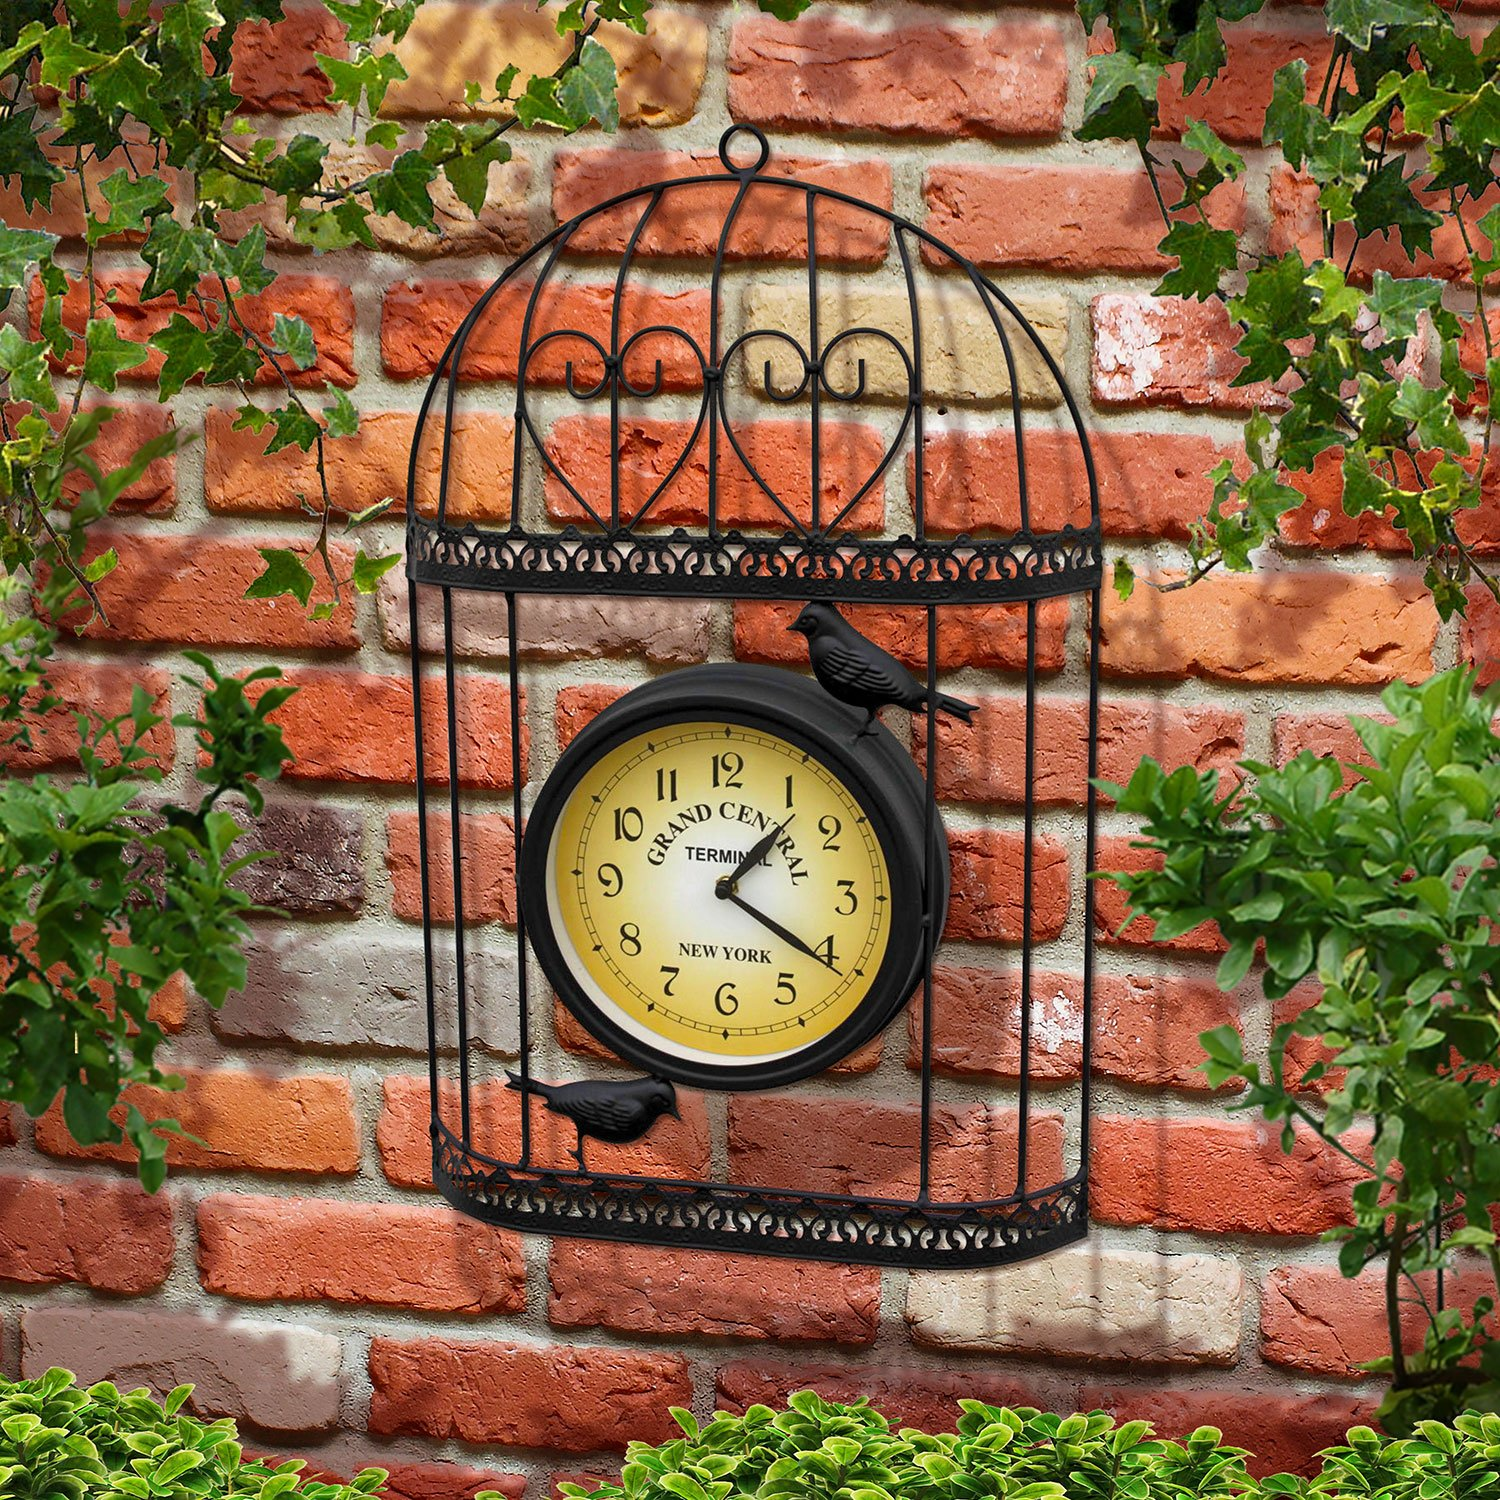 Parkland Shabby Chic Style Birdcage Garden Clock - Wall Mountable Black Metal Bird Cage With Vintage Victorian Station Effect Clock Face - Ideal For Indoor And Outdoor Use